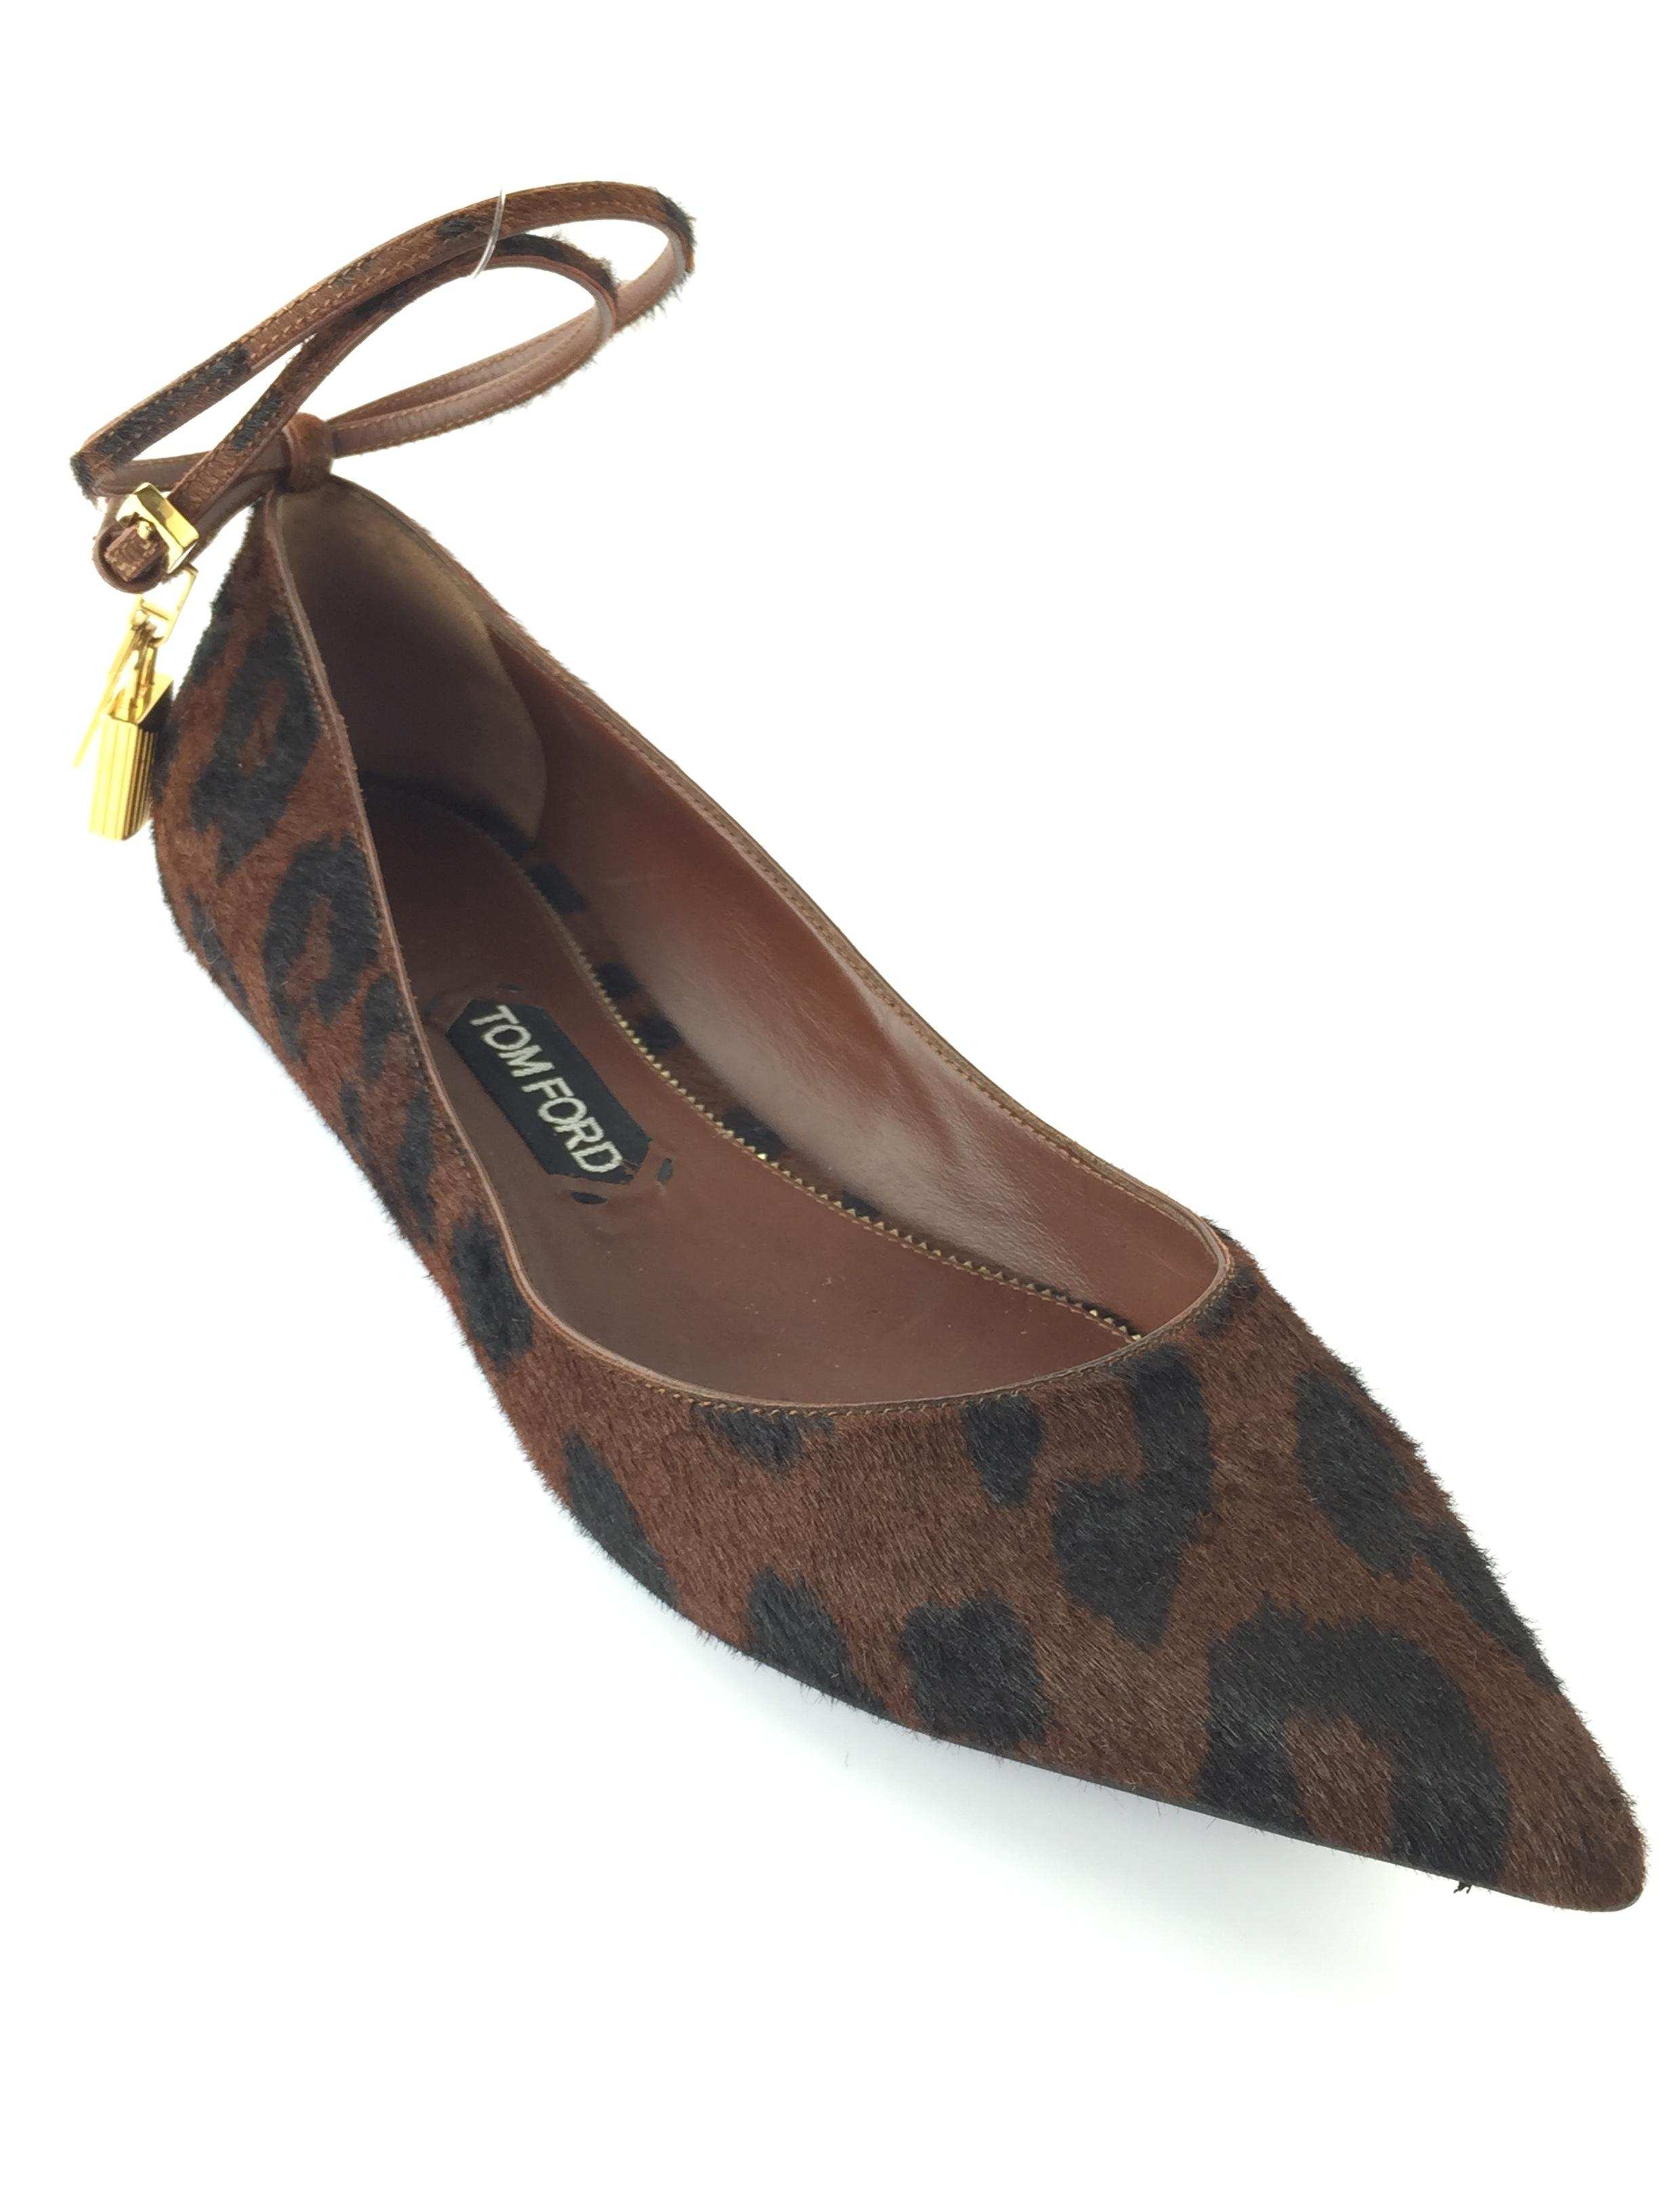 Tom Ford Brown and Skimmer Black Skimmer and Calf Hair Flats Size EU 41 (Approx. US 11) Regular (M, B) 612fe5